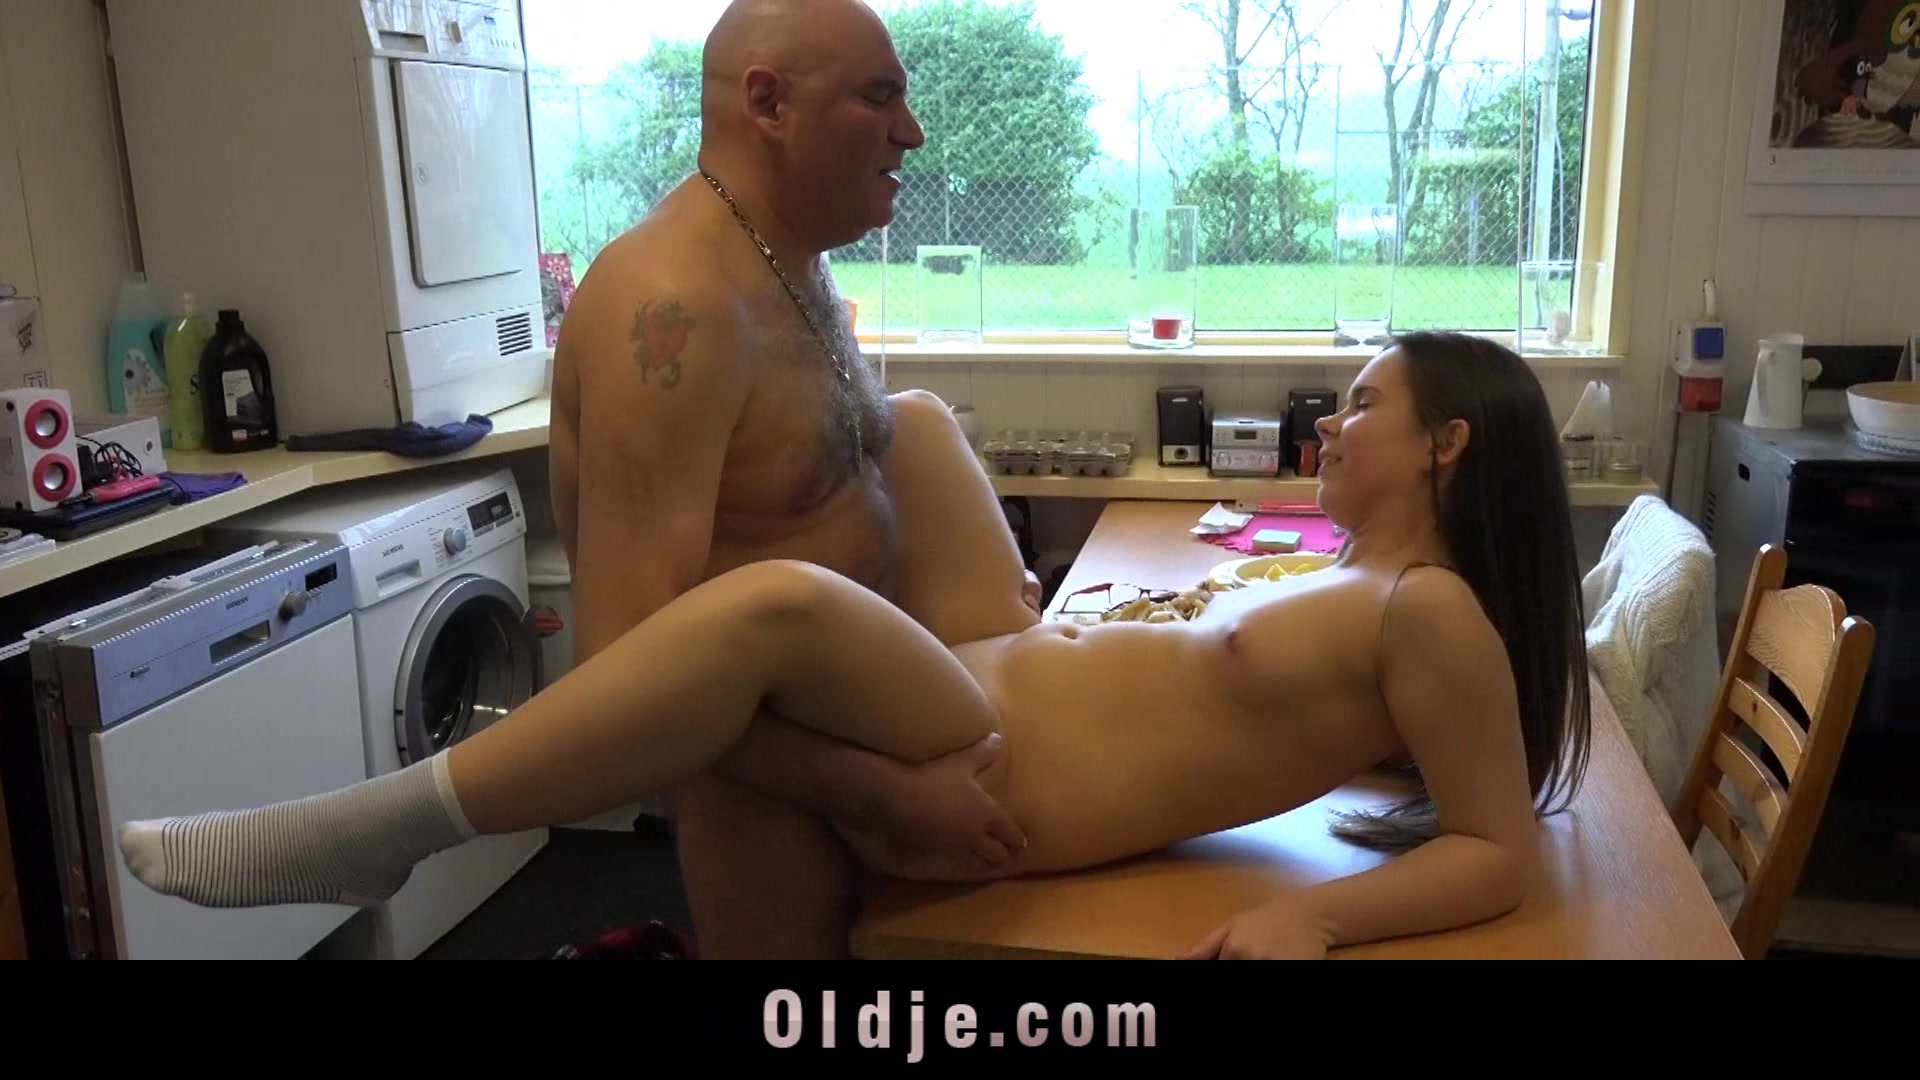 Inexperienced, young babe first fuck with an old man I want a one night stand